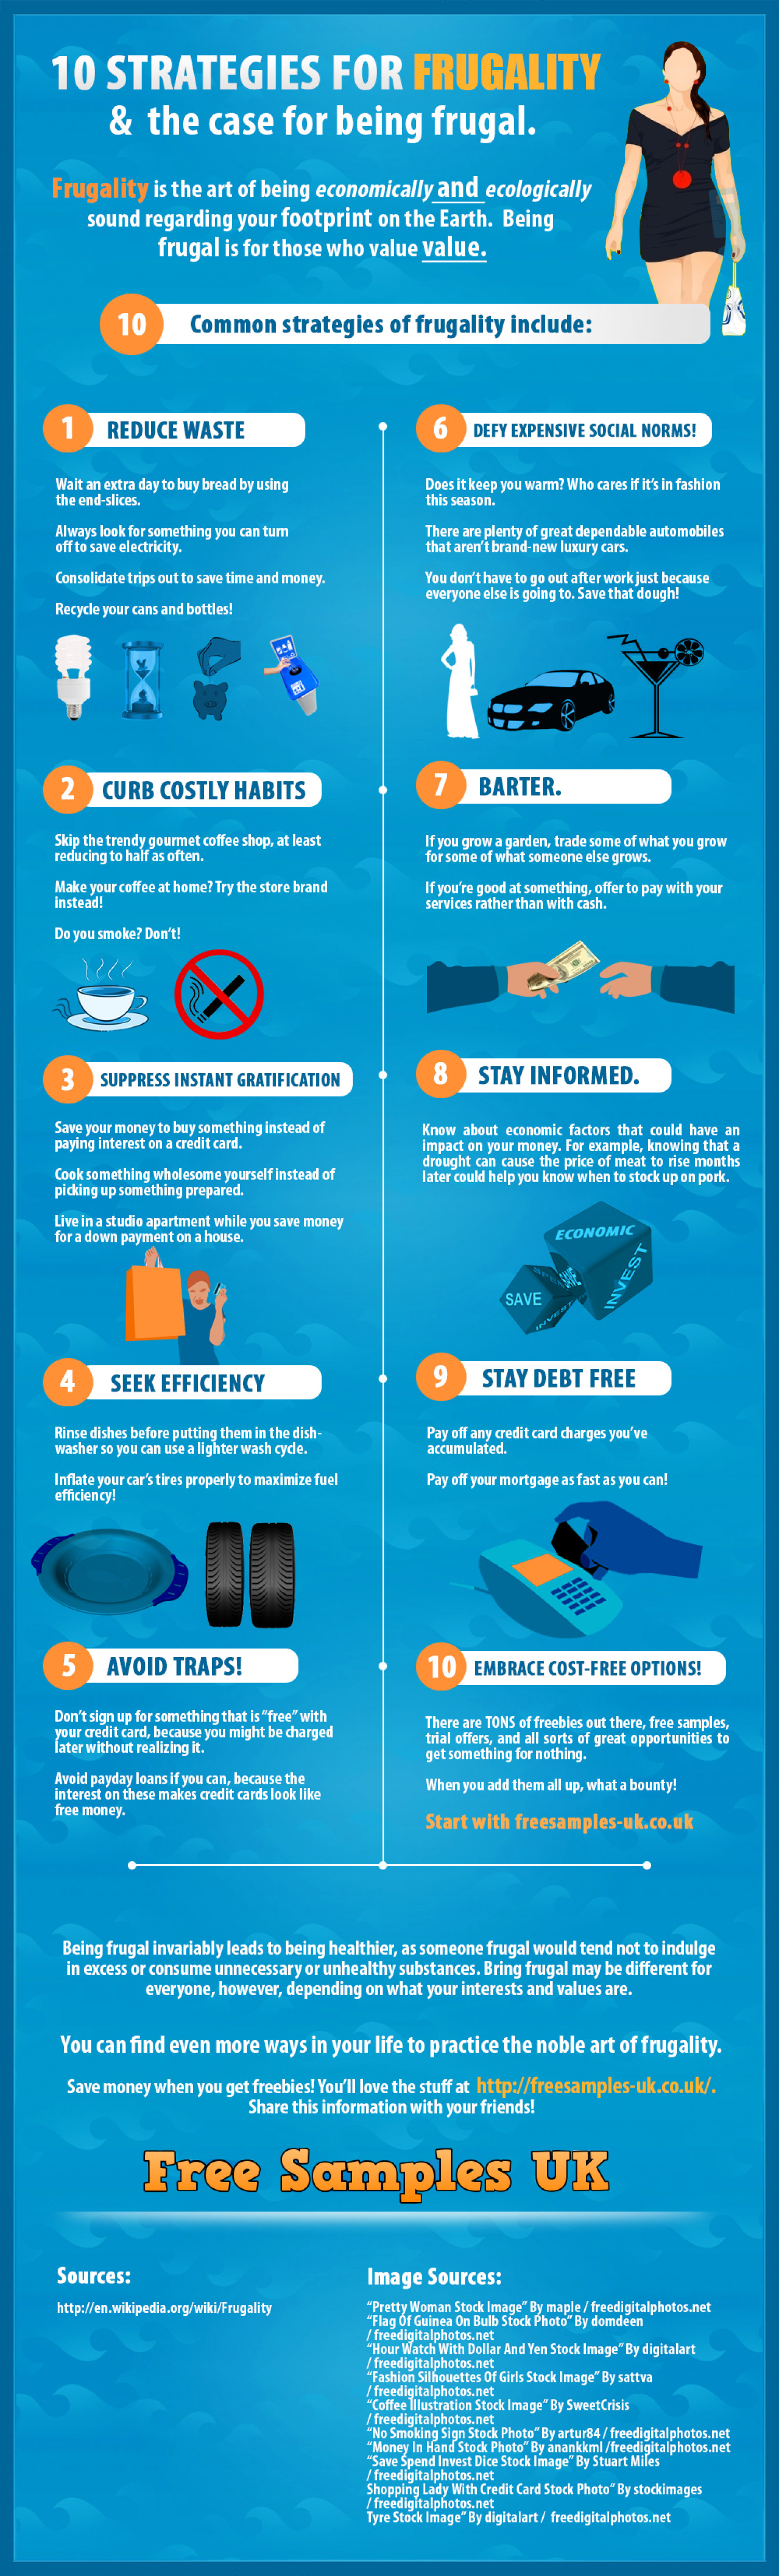 10 Strategies for Frugality & the case for being frugal. Infographic